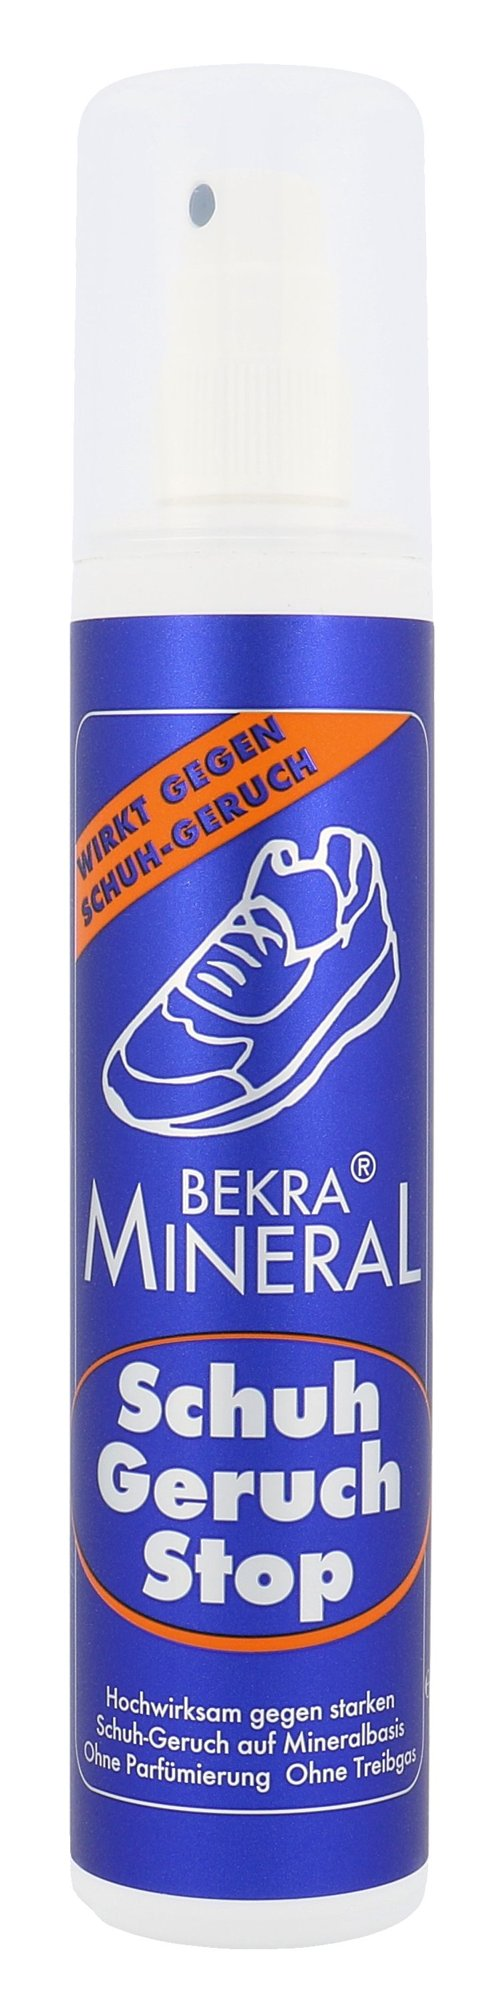 Bekra Mineral Shoe Odour Stop Cosmetic 150ml